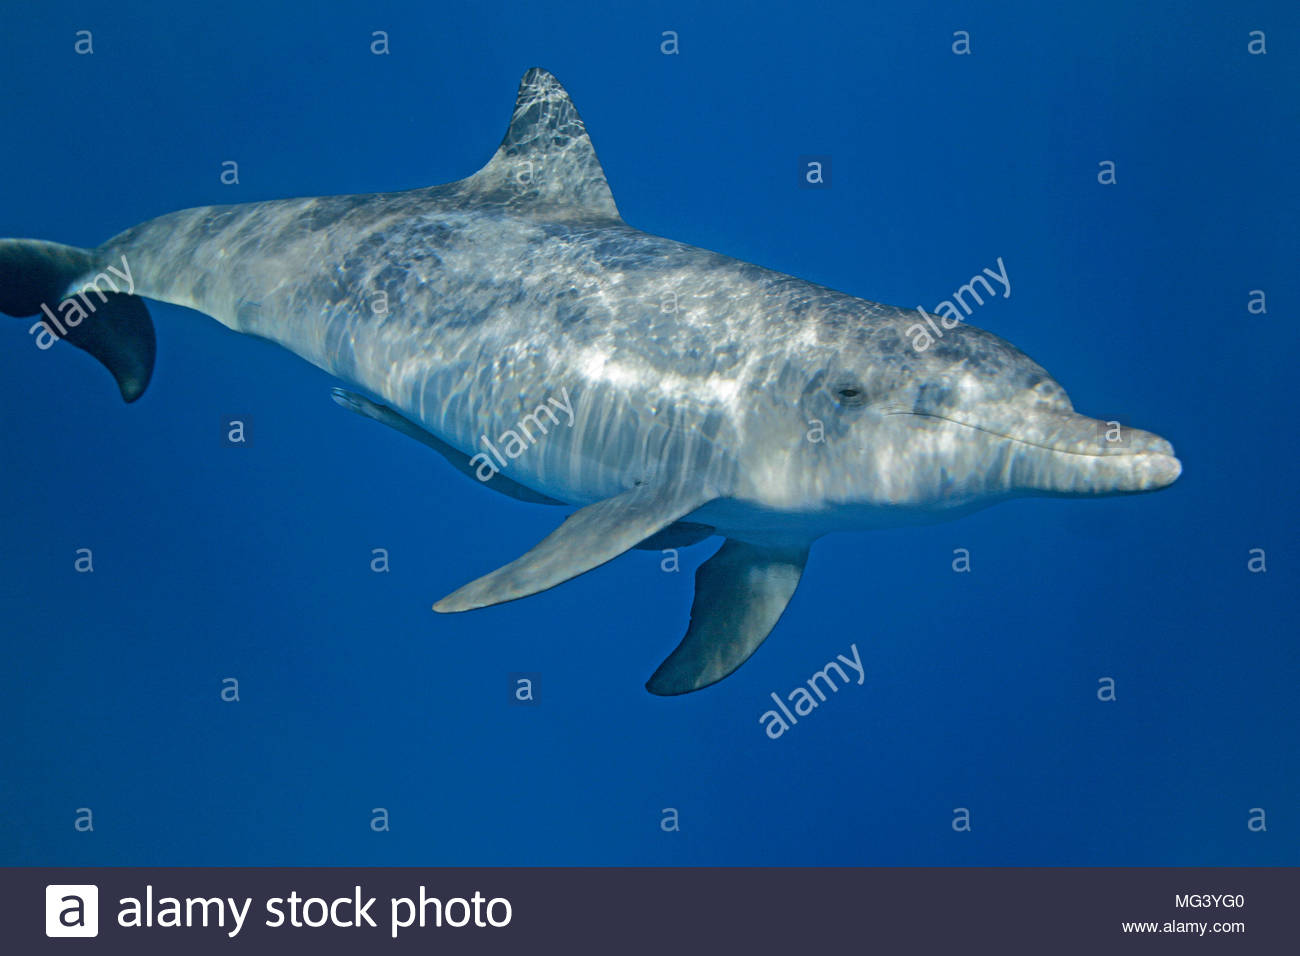 Indopazifischer Grosser Tuemmler (Tursiops aduncus), Ogasawara, Japan | Indo-Pacific bottlenose dolphin (Tursiops aduncus), Ogasawara, Japan - Stock Image